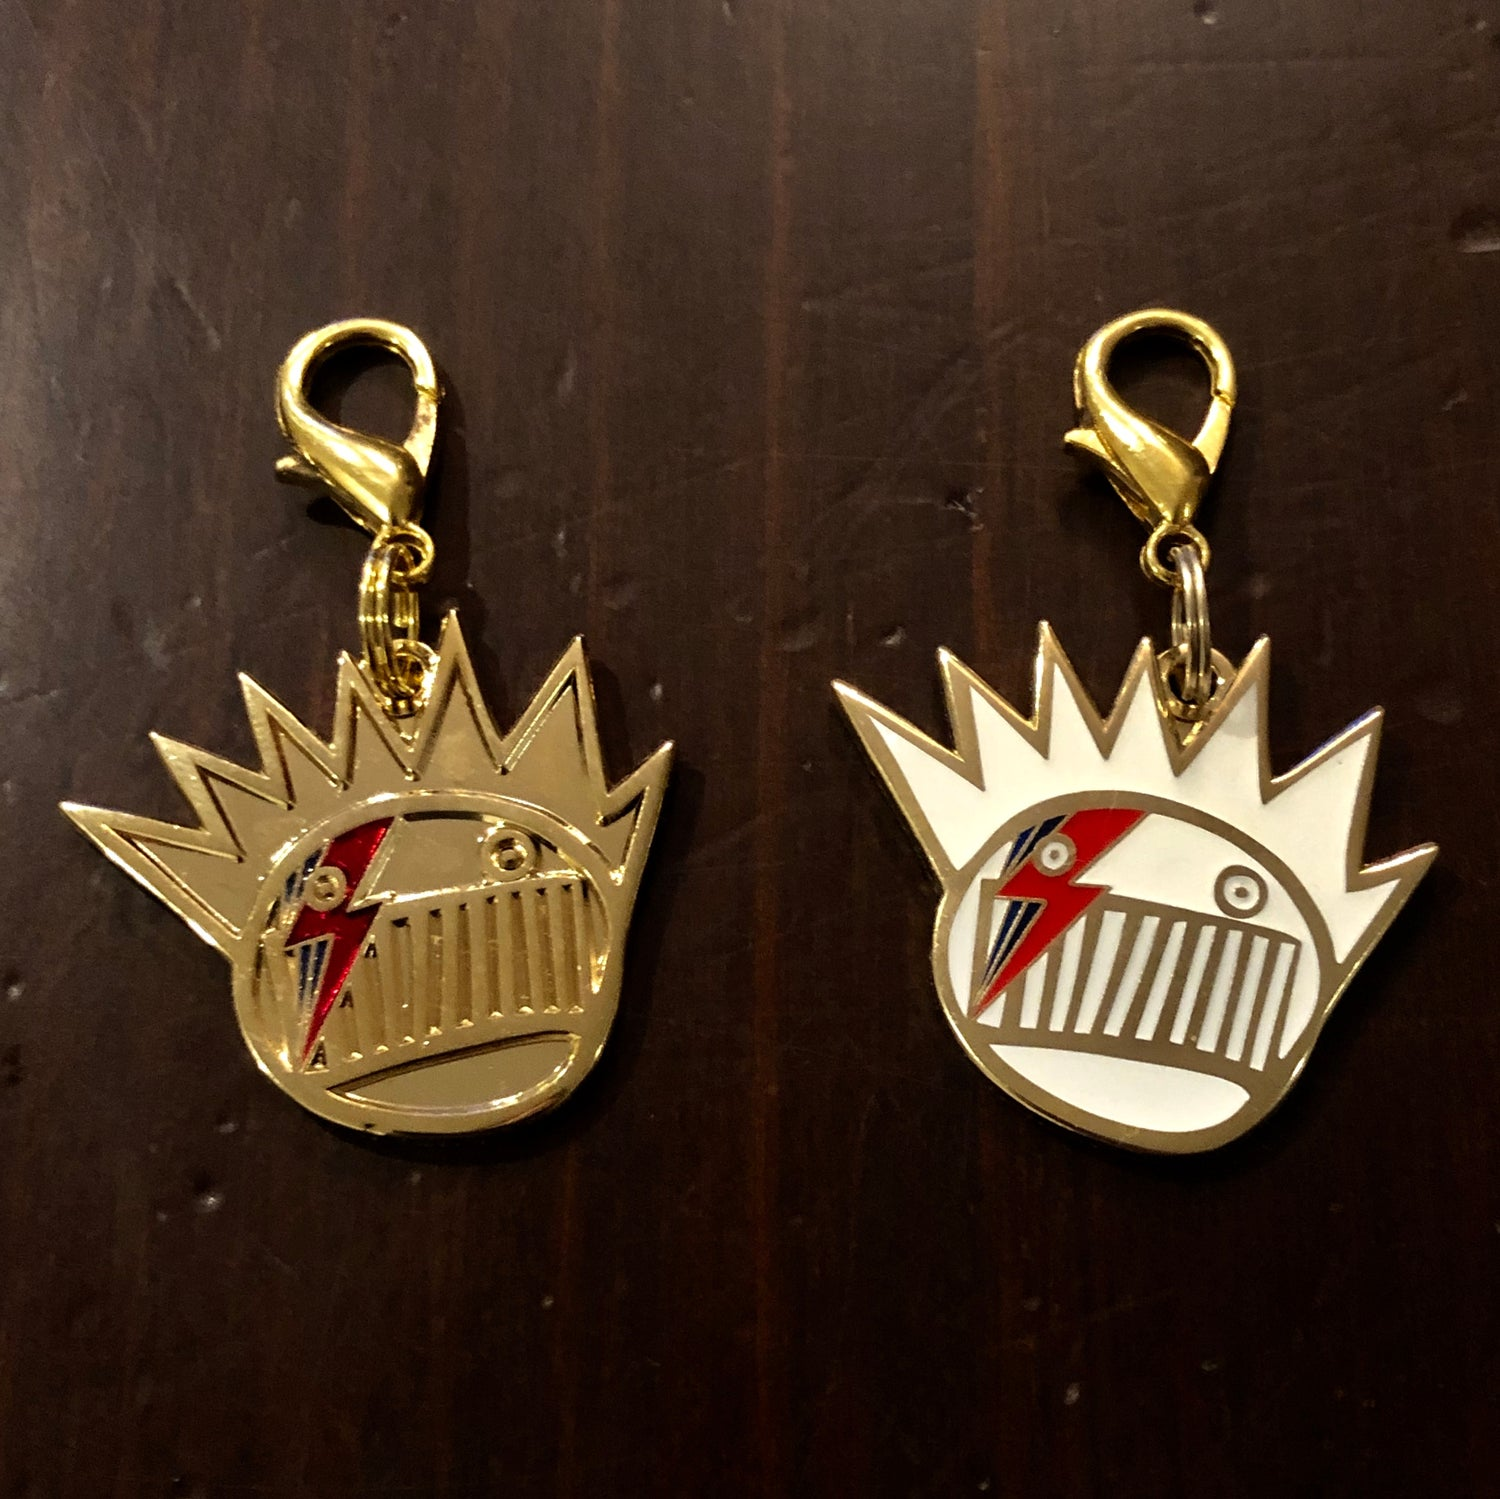 Image of Bowie/Boognish zipper pulls